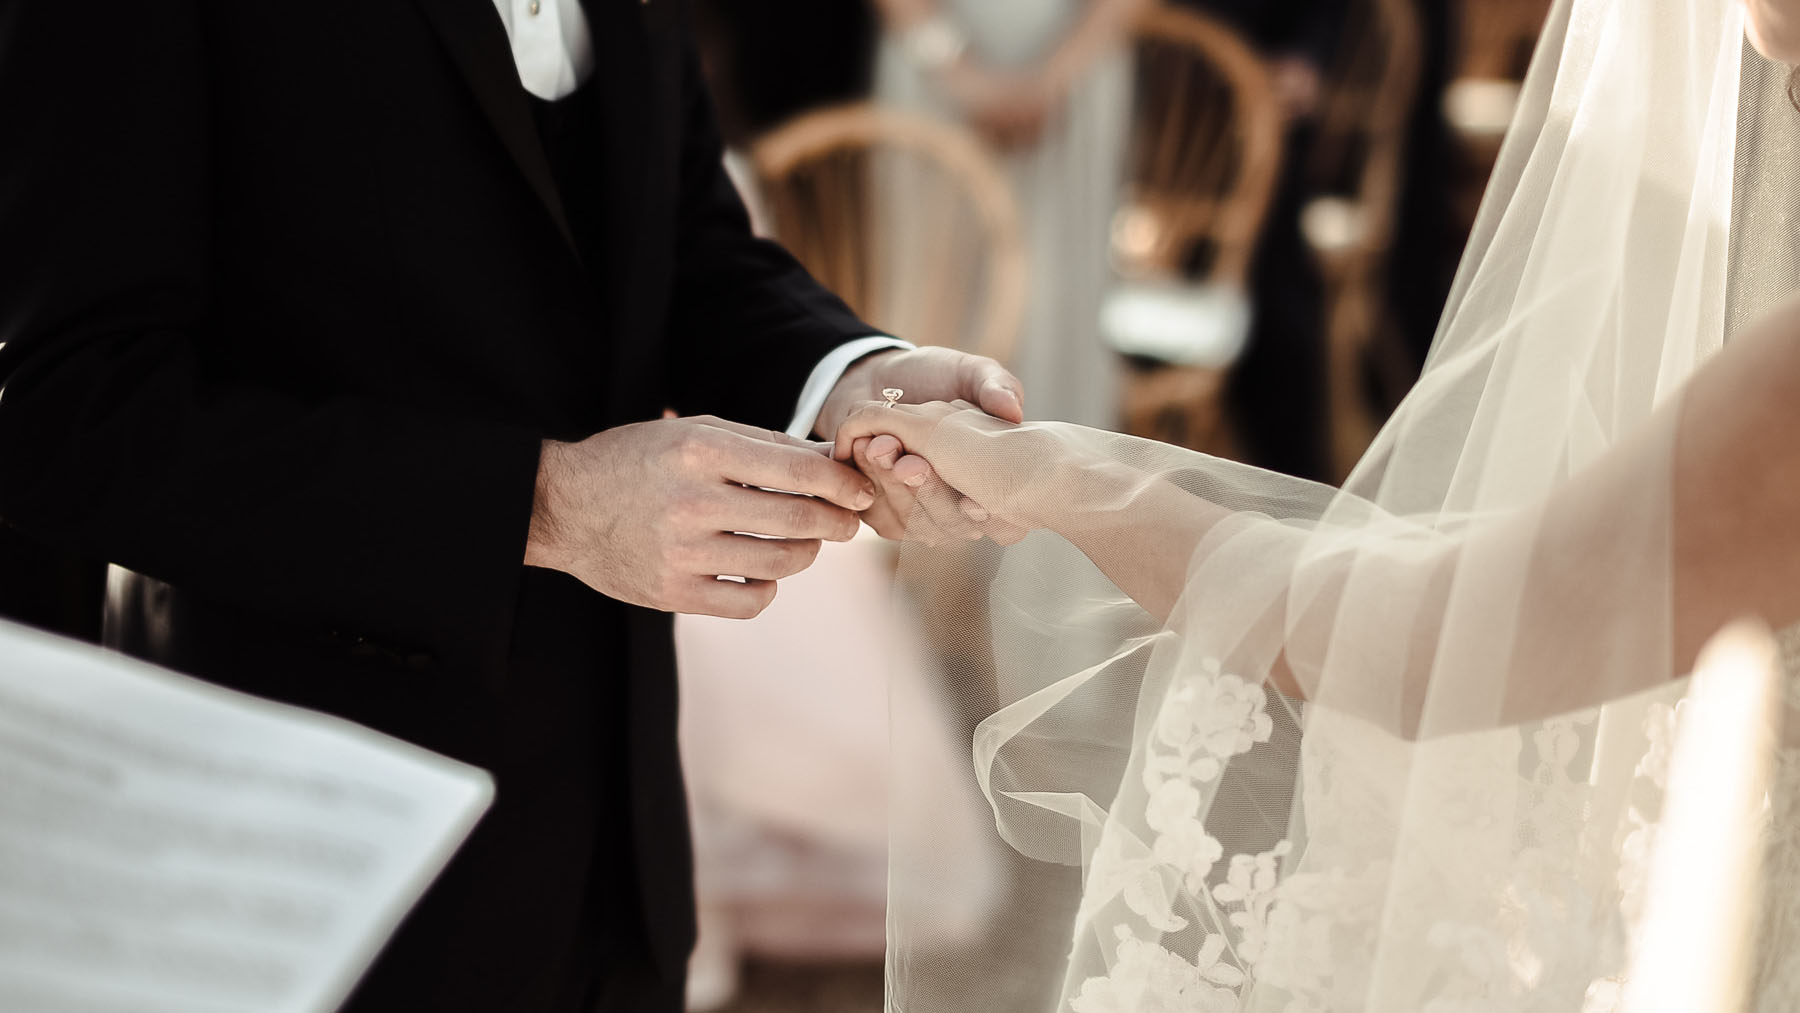 Professional wedding celebrant in Italy - Services